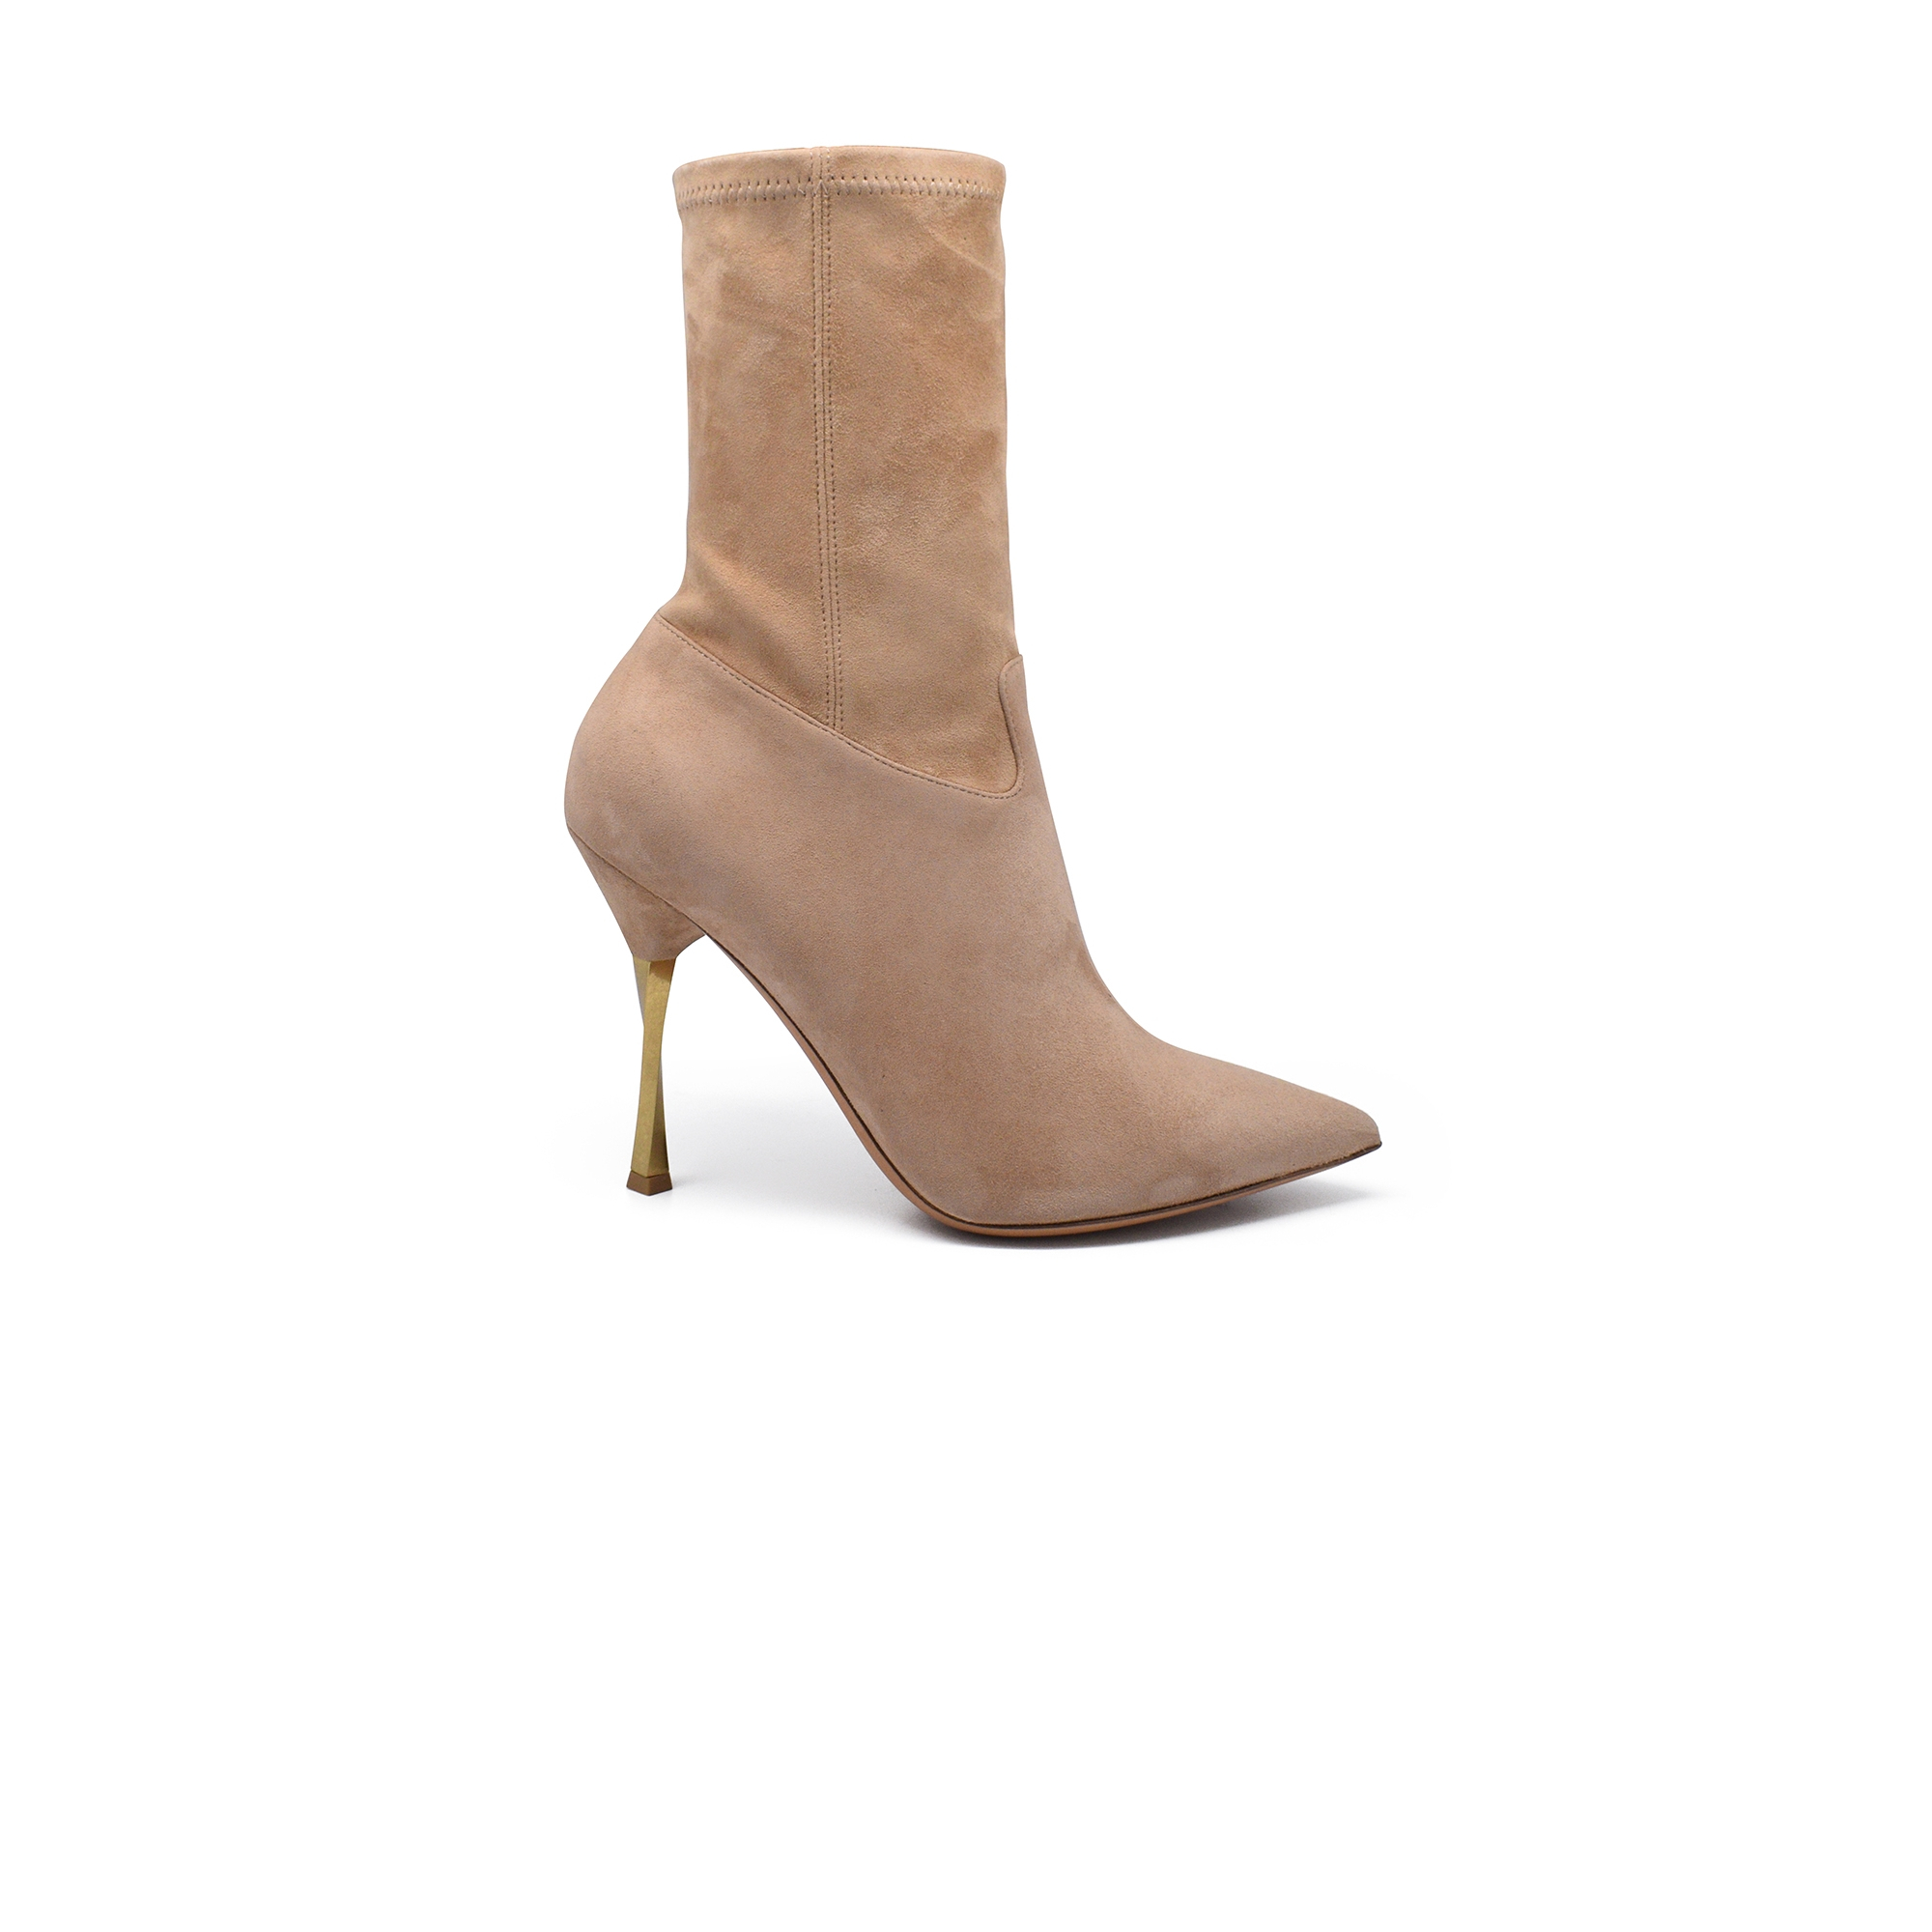 Twisted heel boots